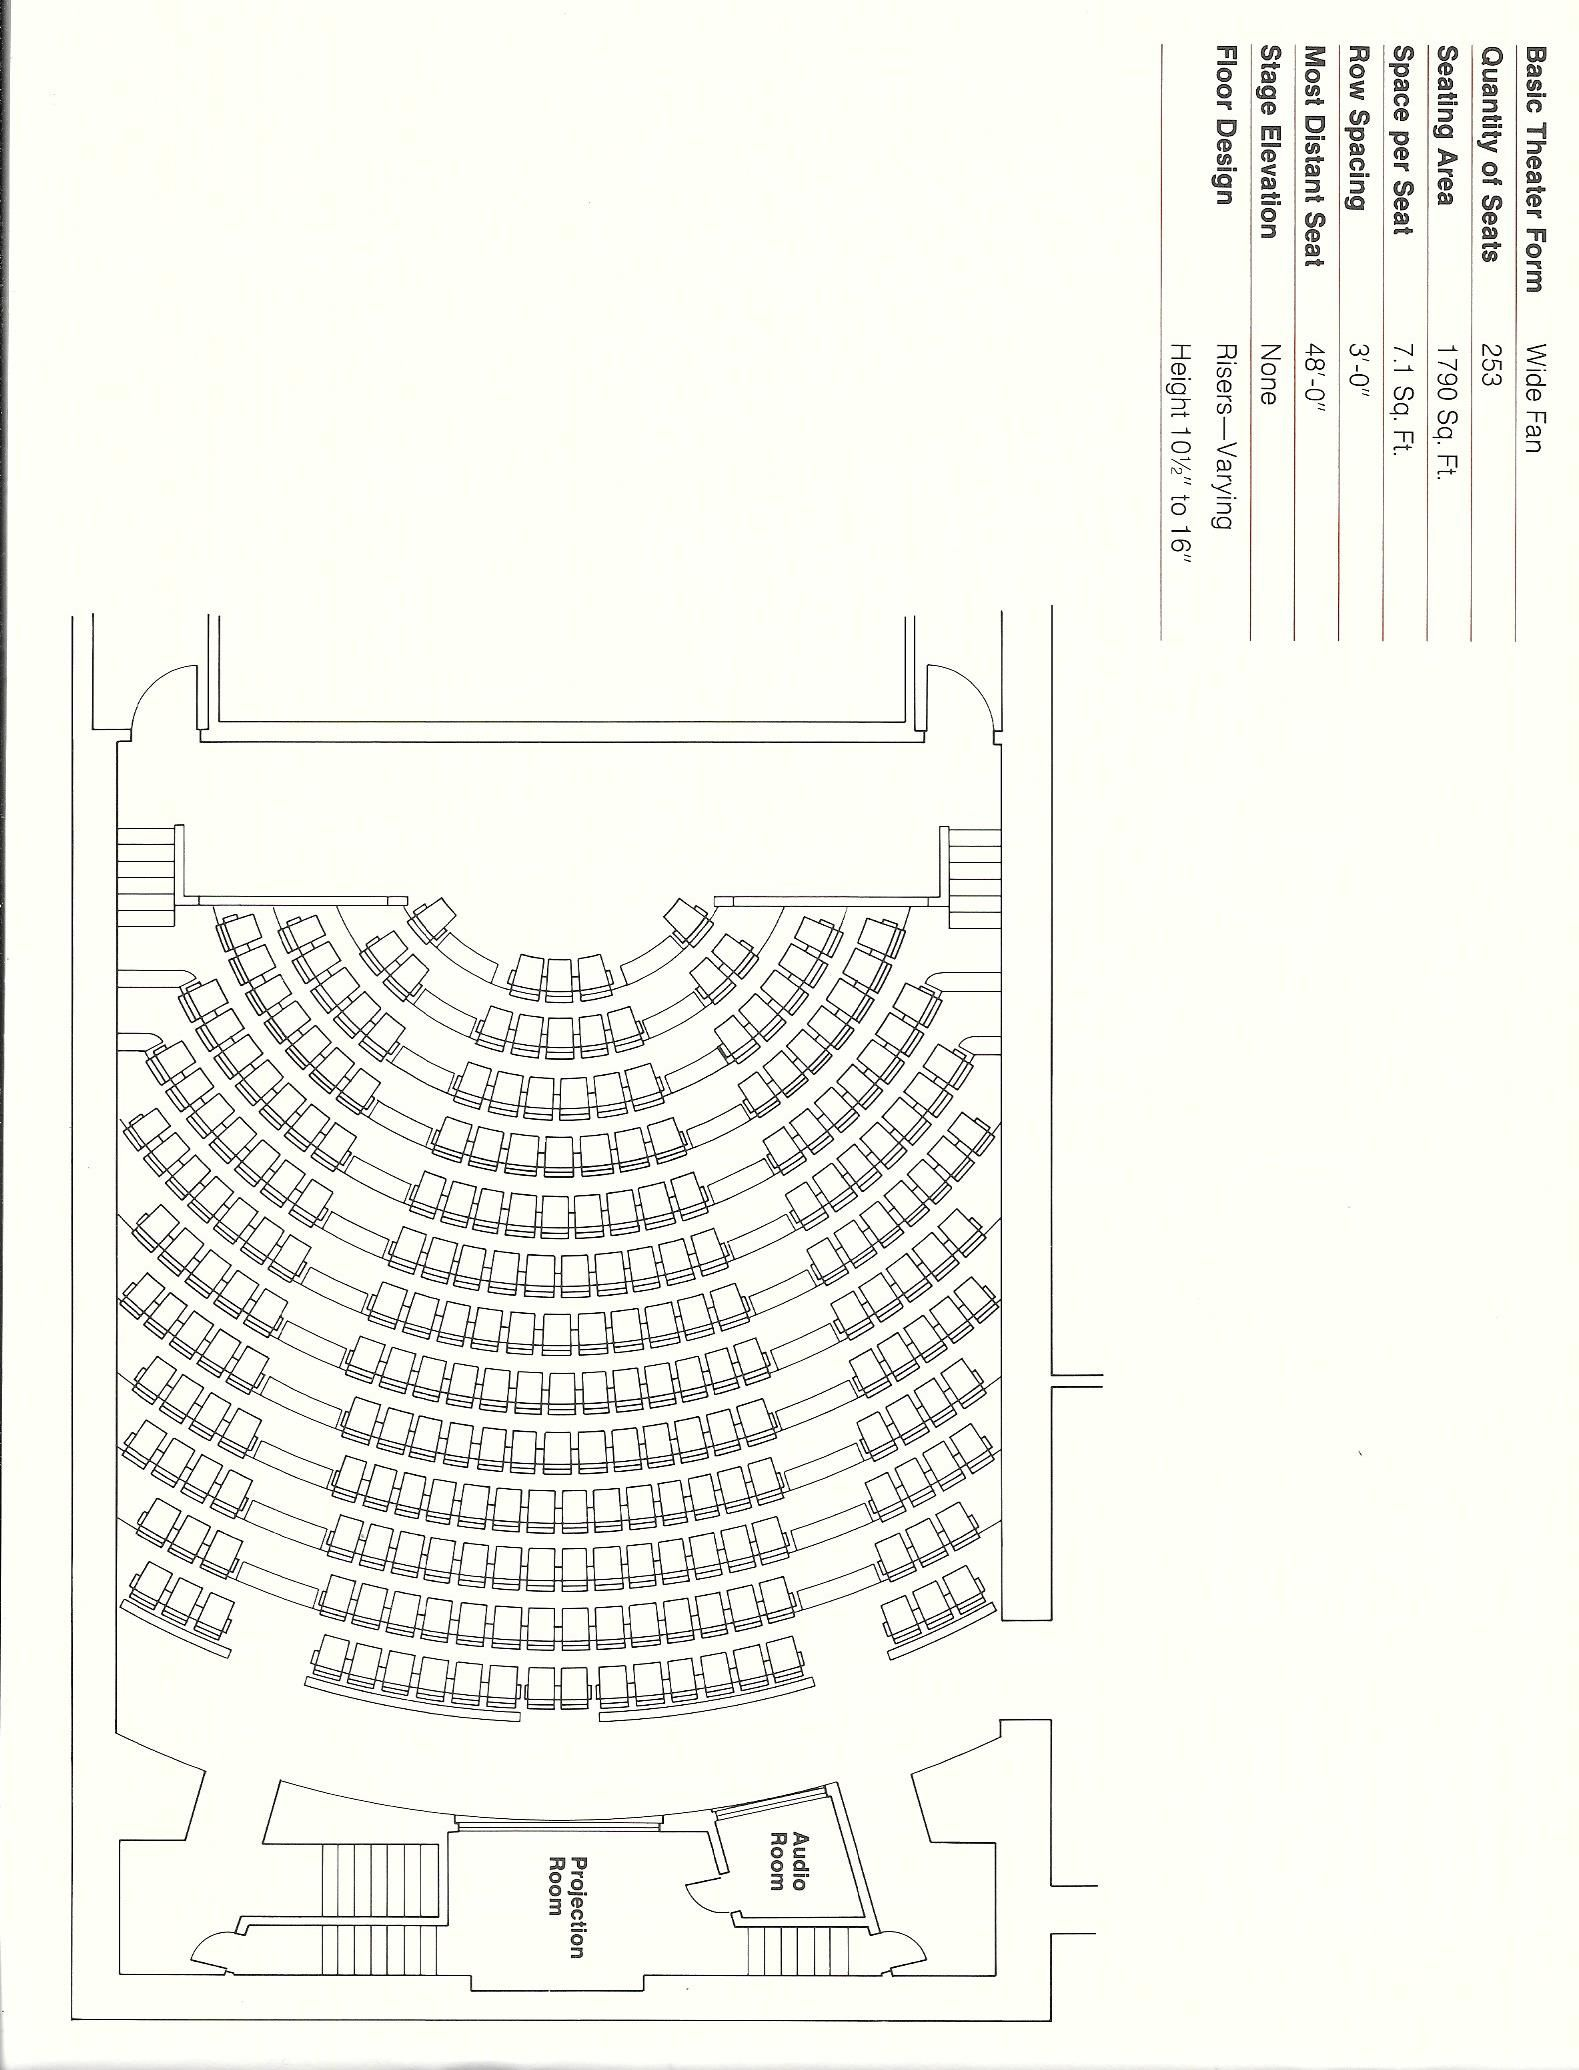 Room Design Layout Templates: Pin By Theatre Solutions Inc. On Auditorium & Fixed